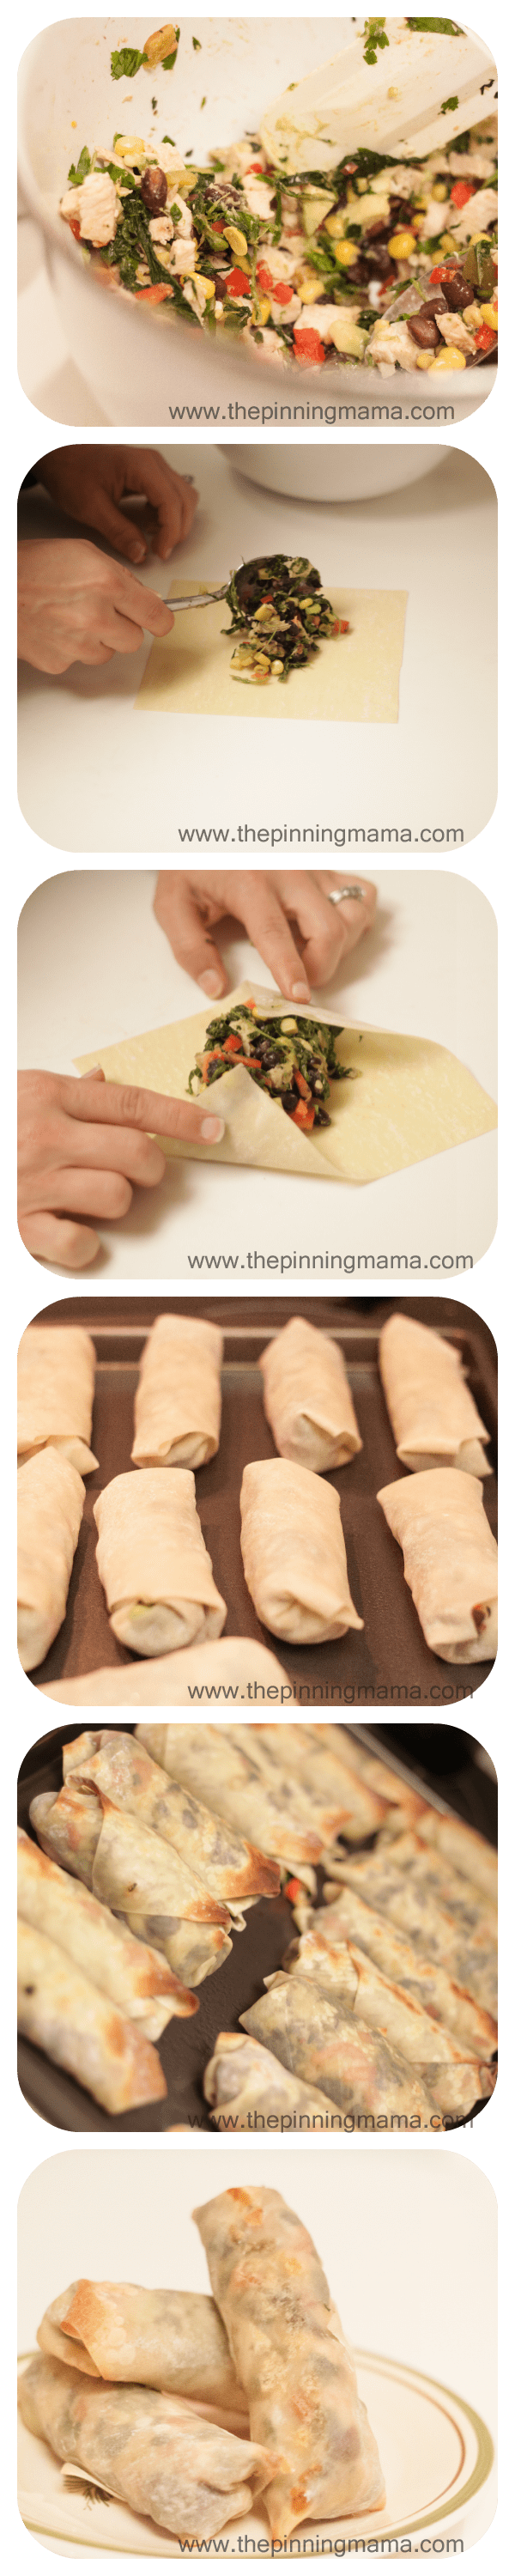 Baked Southwestern Eggrolls with Chicken and Avocado by www.thepinningmama.com